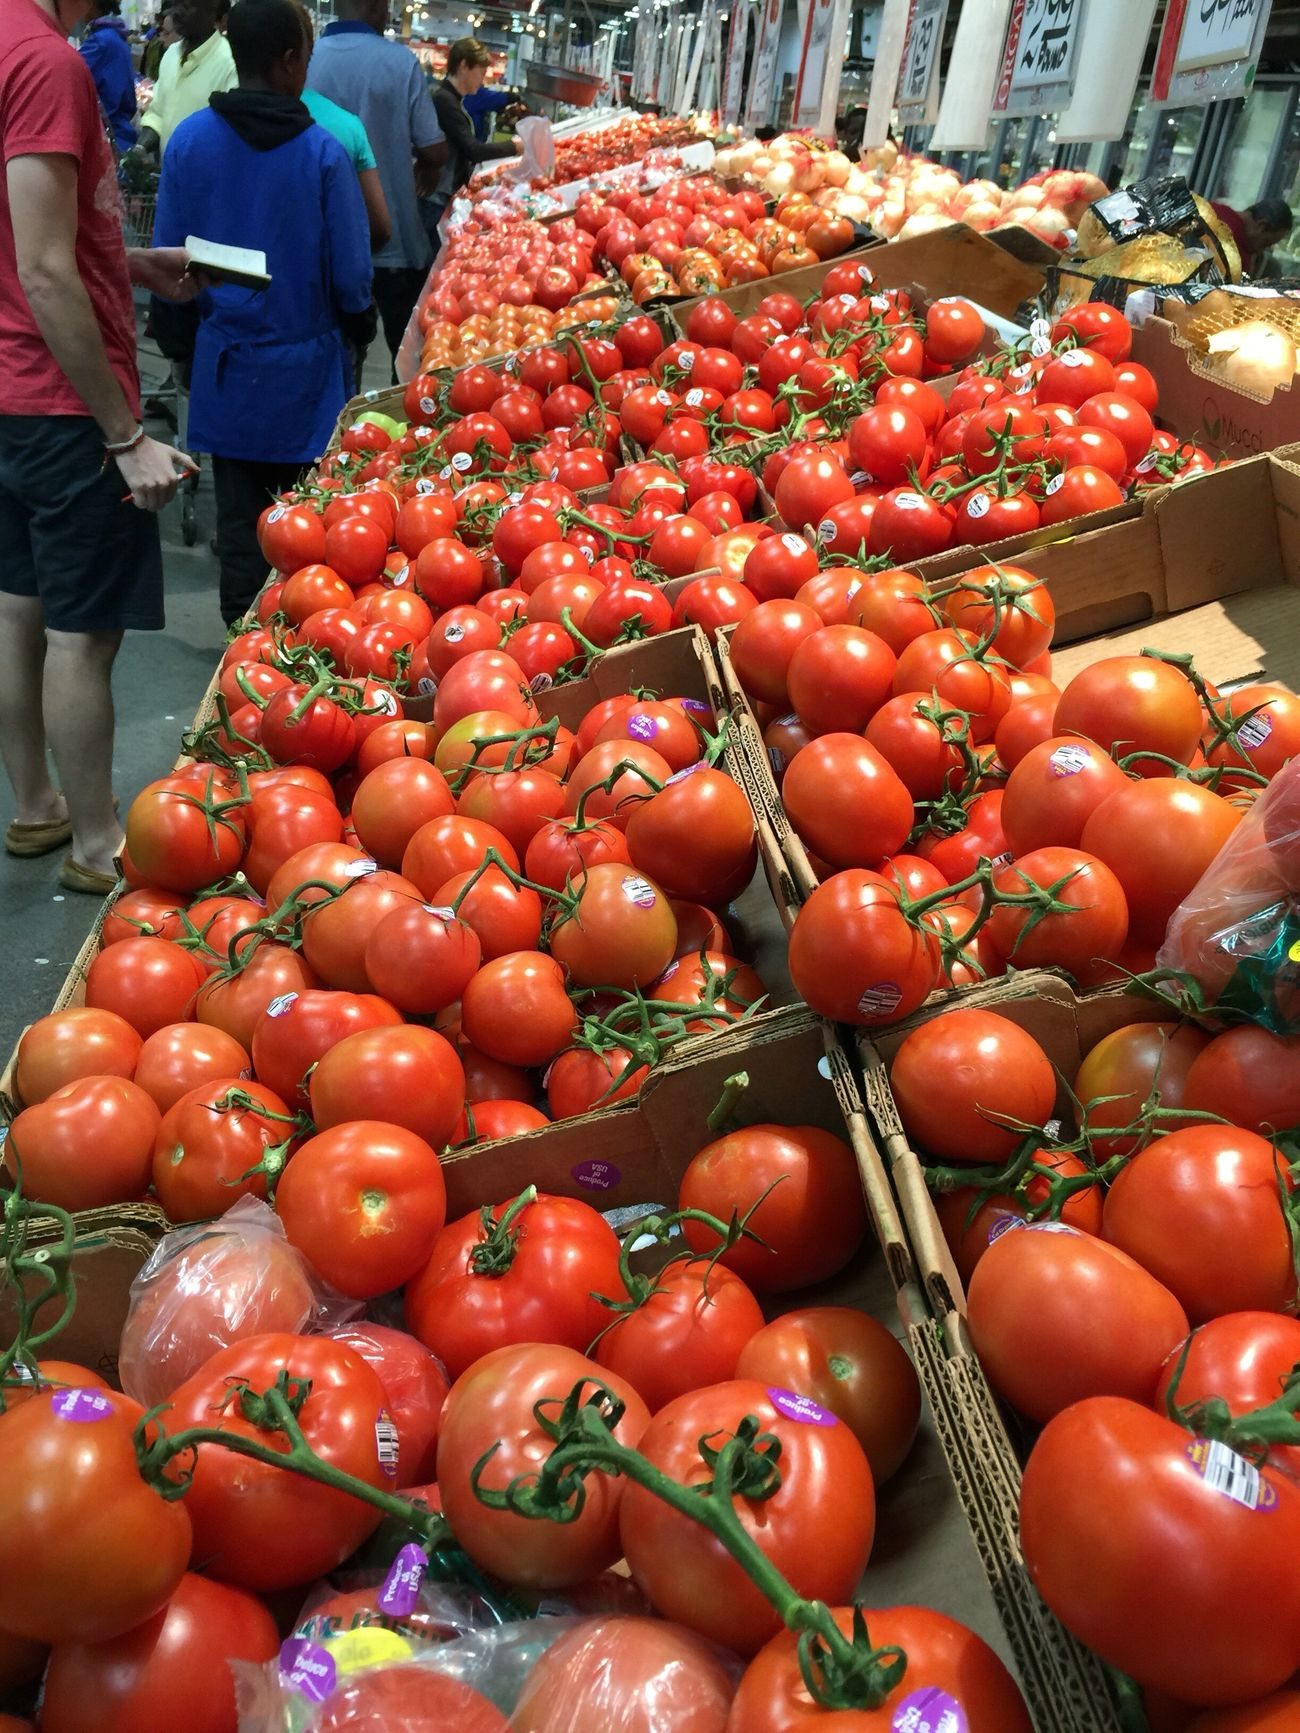 Your Dekalb Farmers Market A World Market Exotic Foods Varieties And Choices Super Healthy Foods Tomatoes